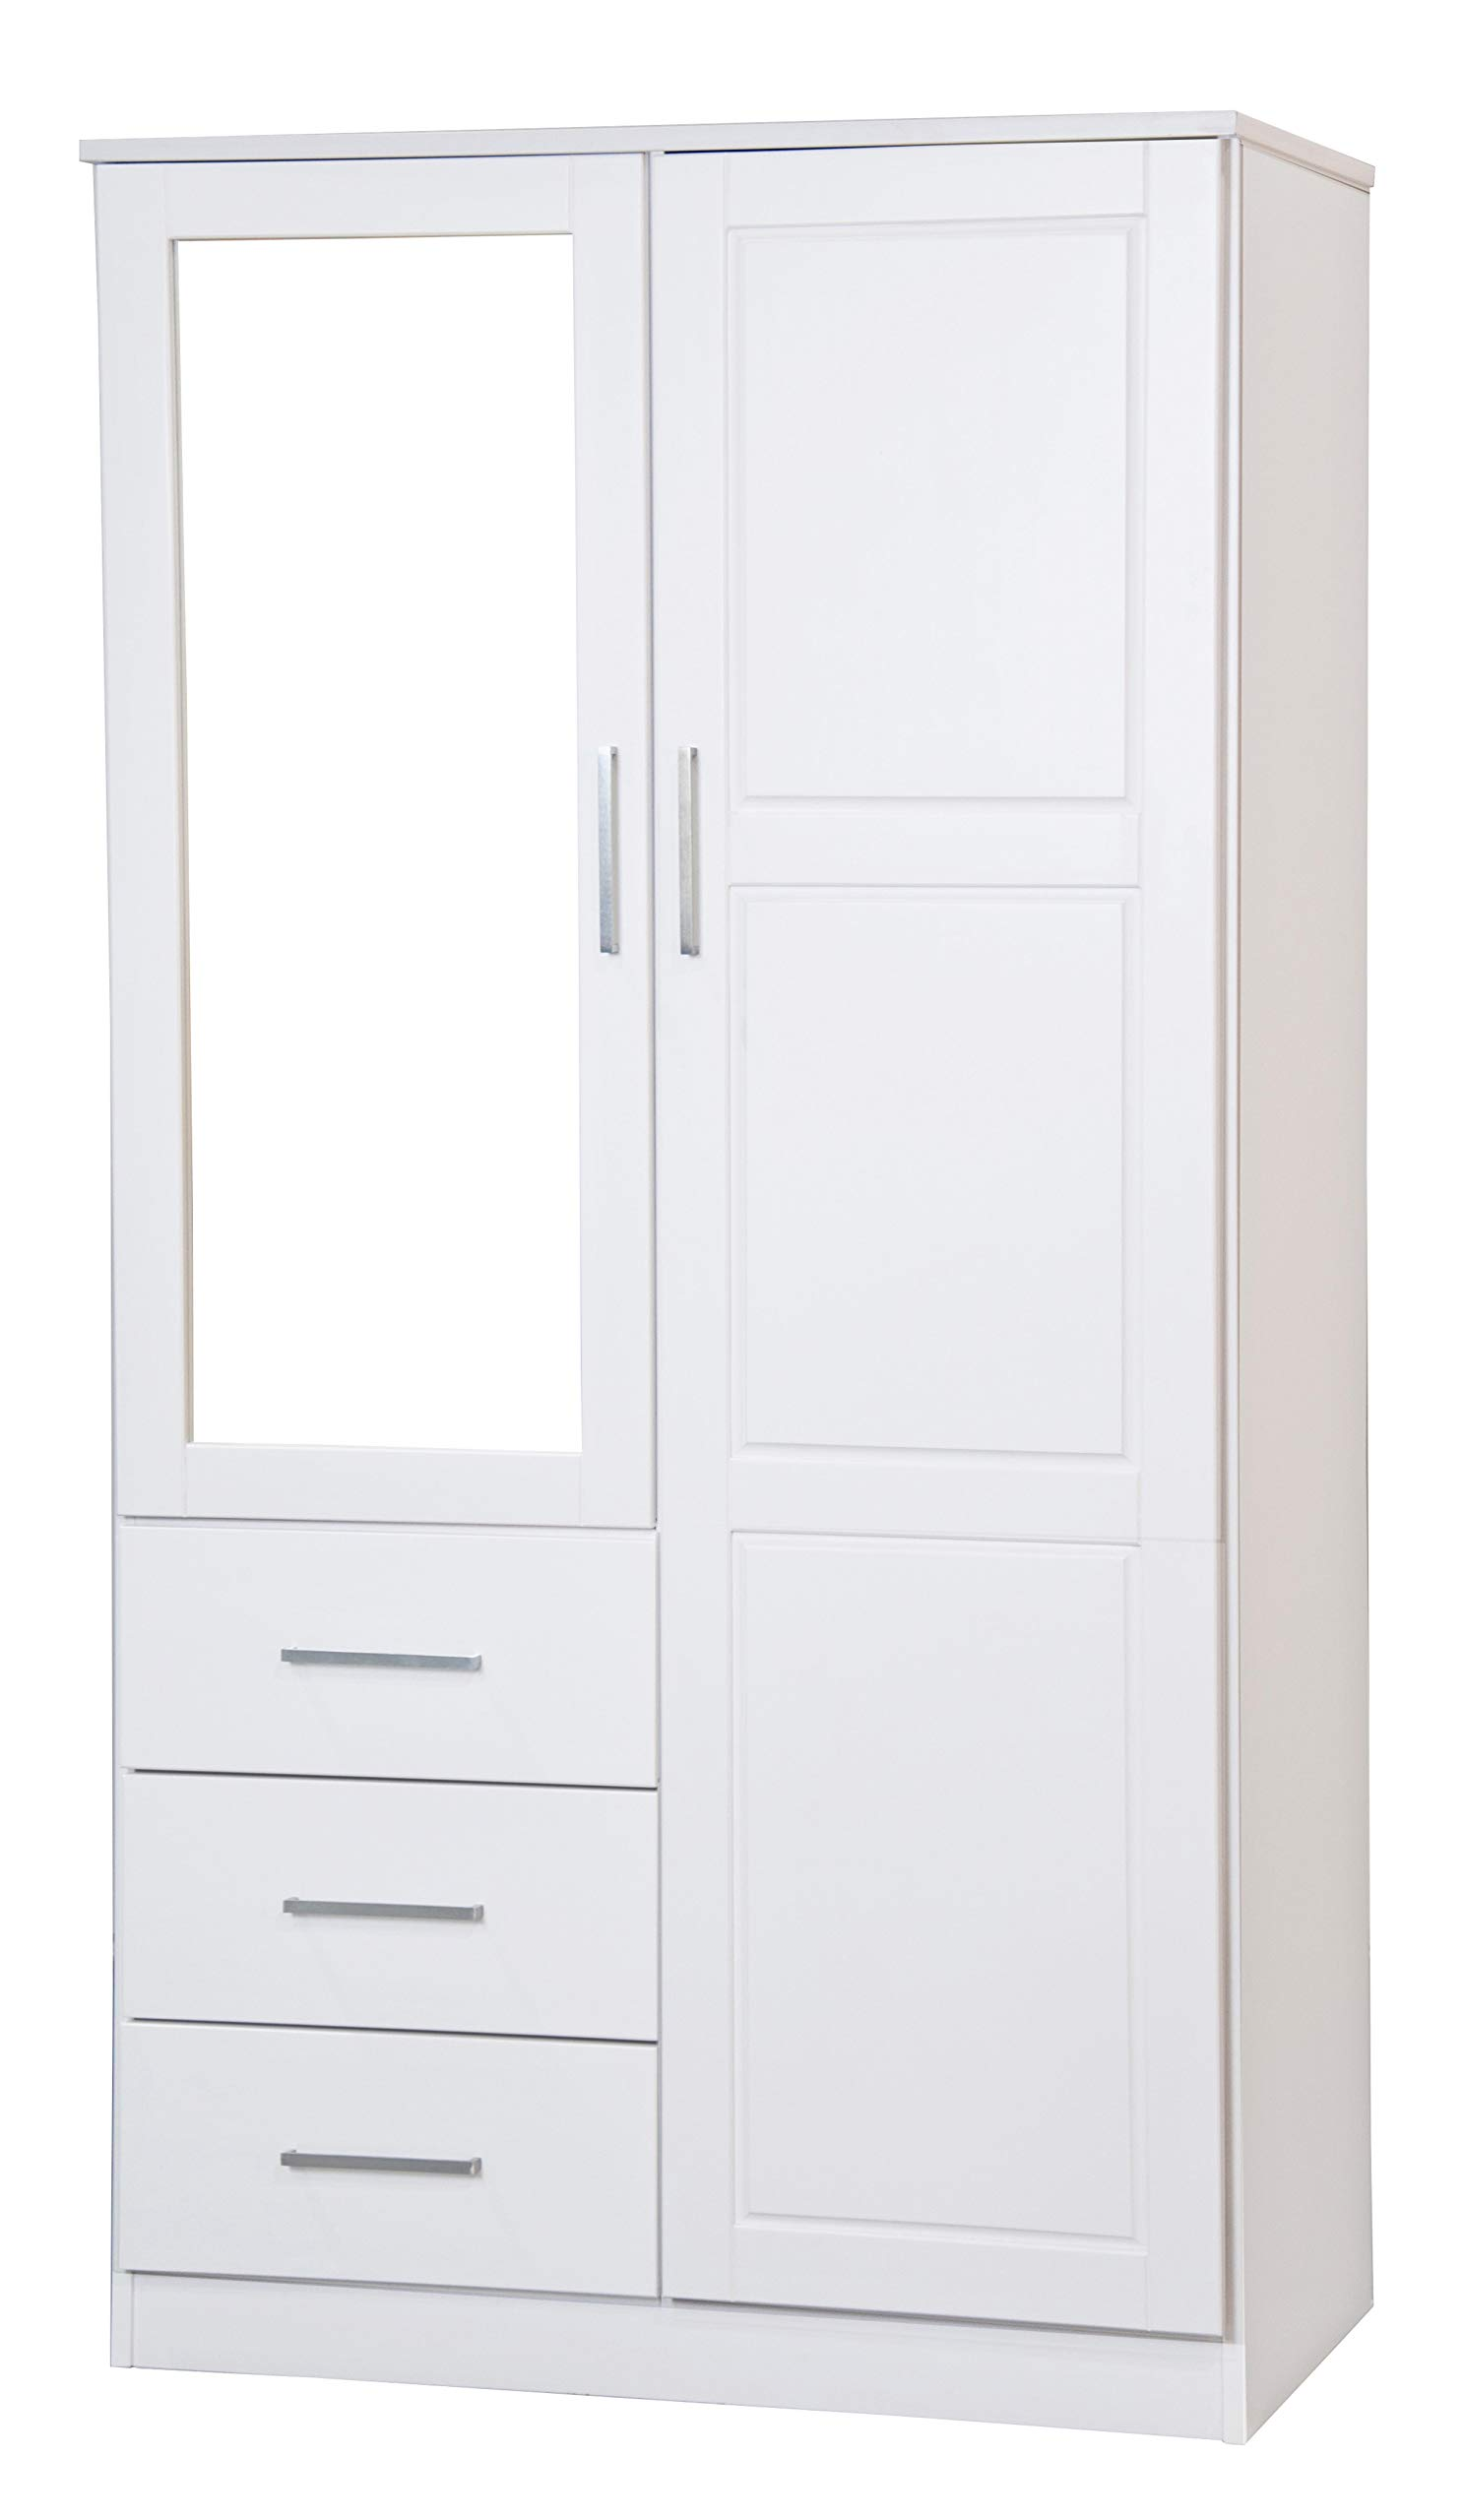 Palace Imports Metro Solid Pine Wood Wardrobe/Armoire/Closet with Mirror and 3 Drawers 7101 White, 38''w x 21''d x 72''h. Optional Additional Shelves Sold Separately. Requires Assembly.